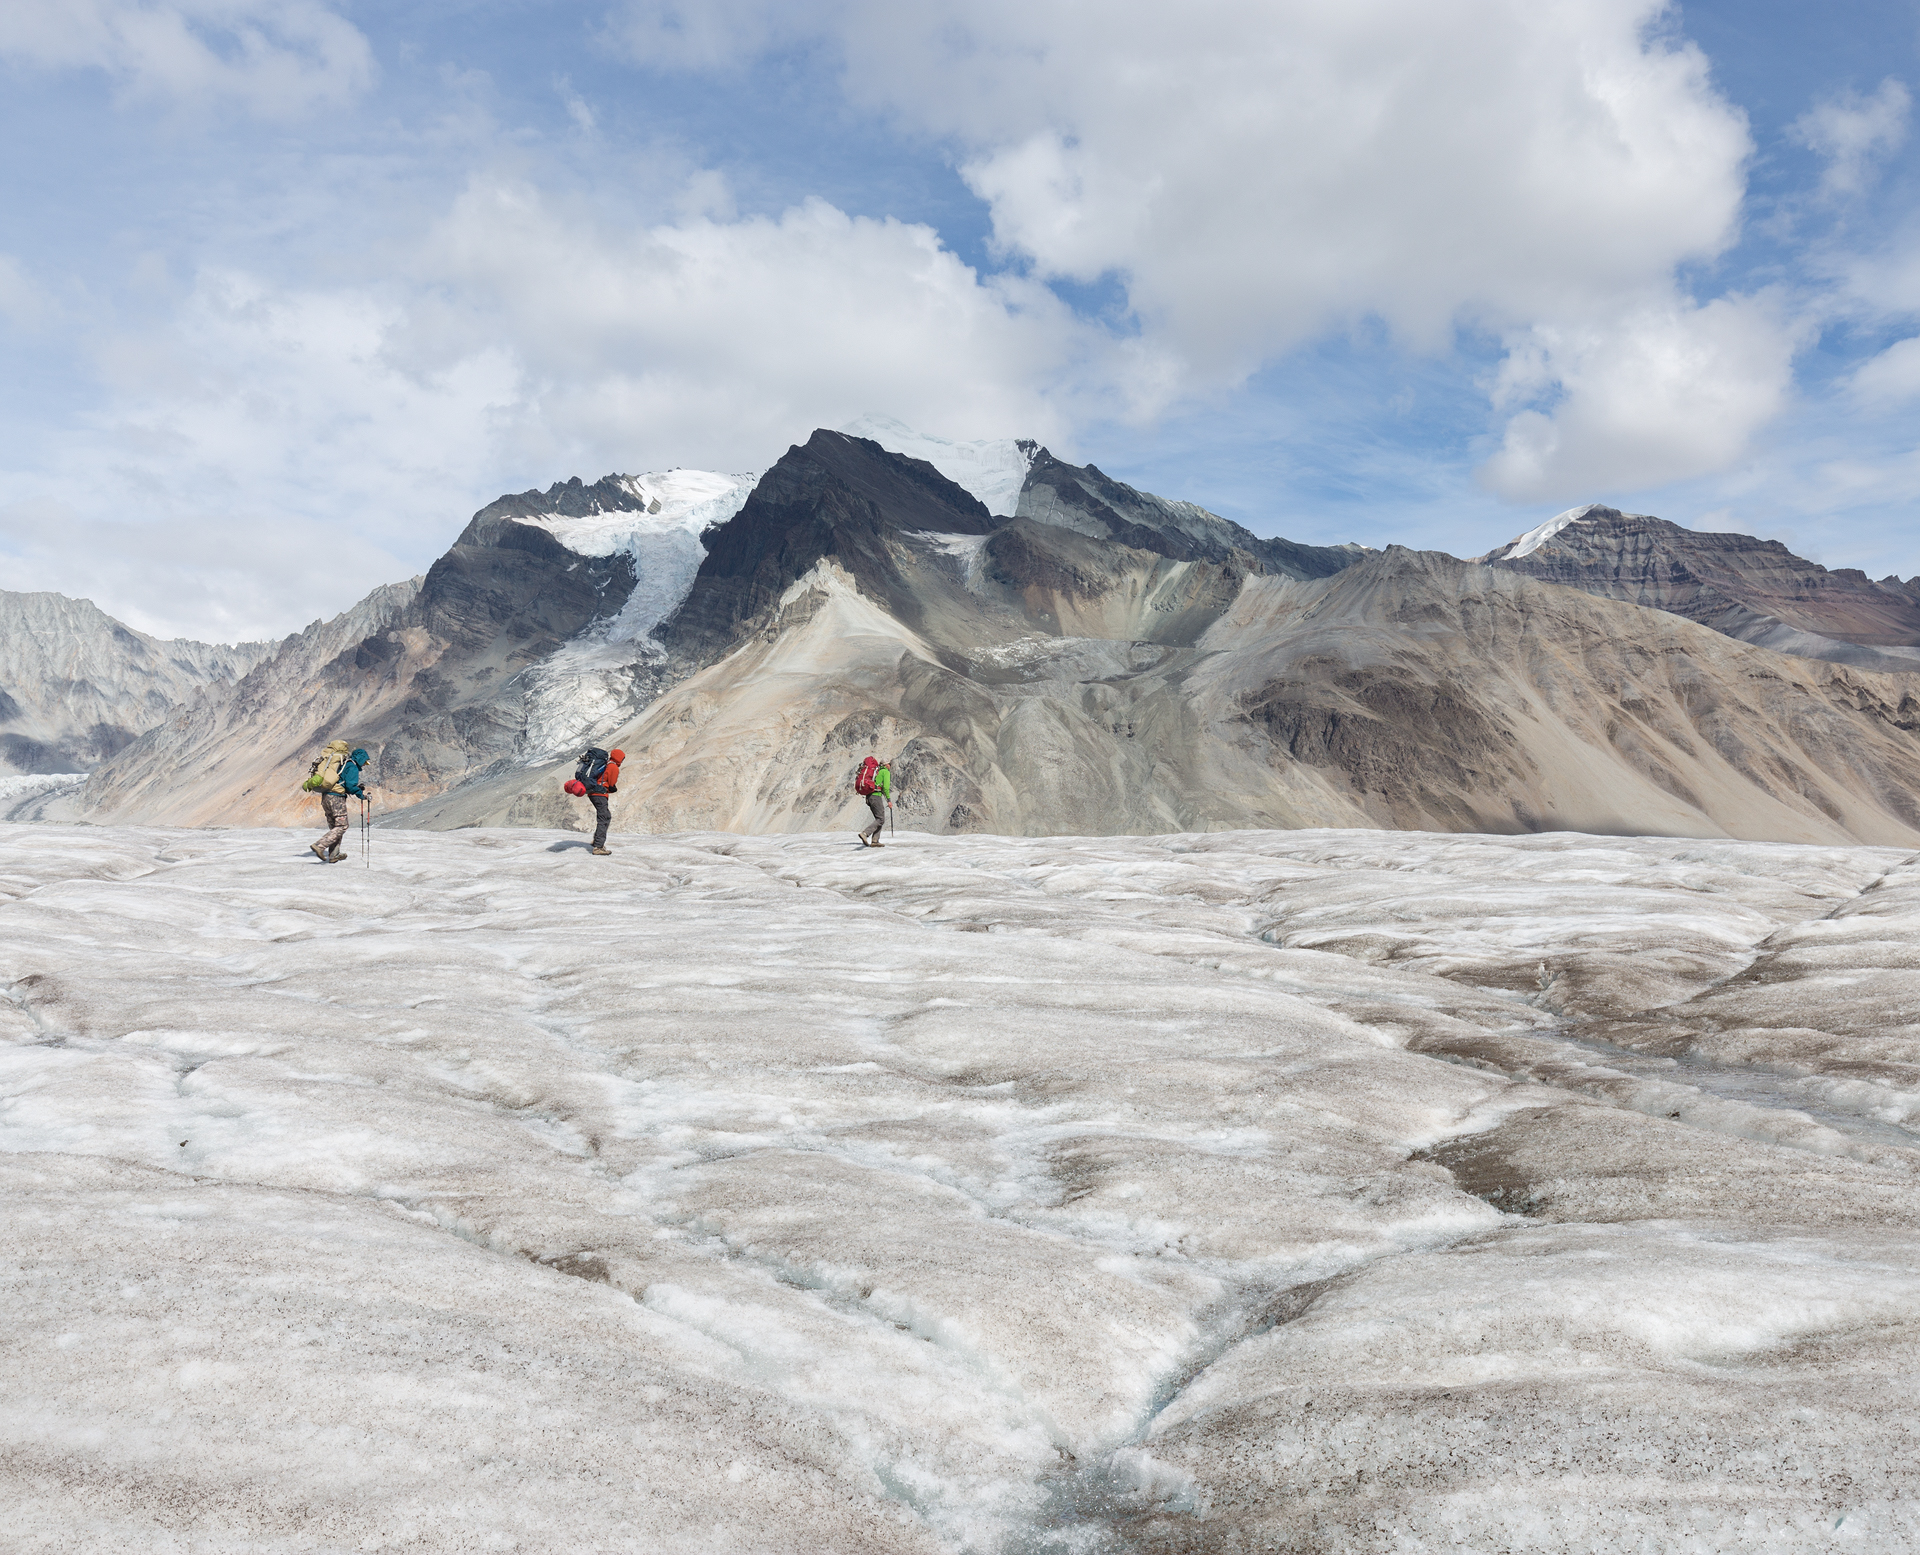 Crossing the Frederika Glacier with Frederika Peak in the background.